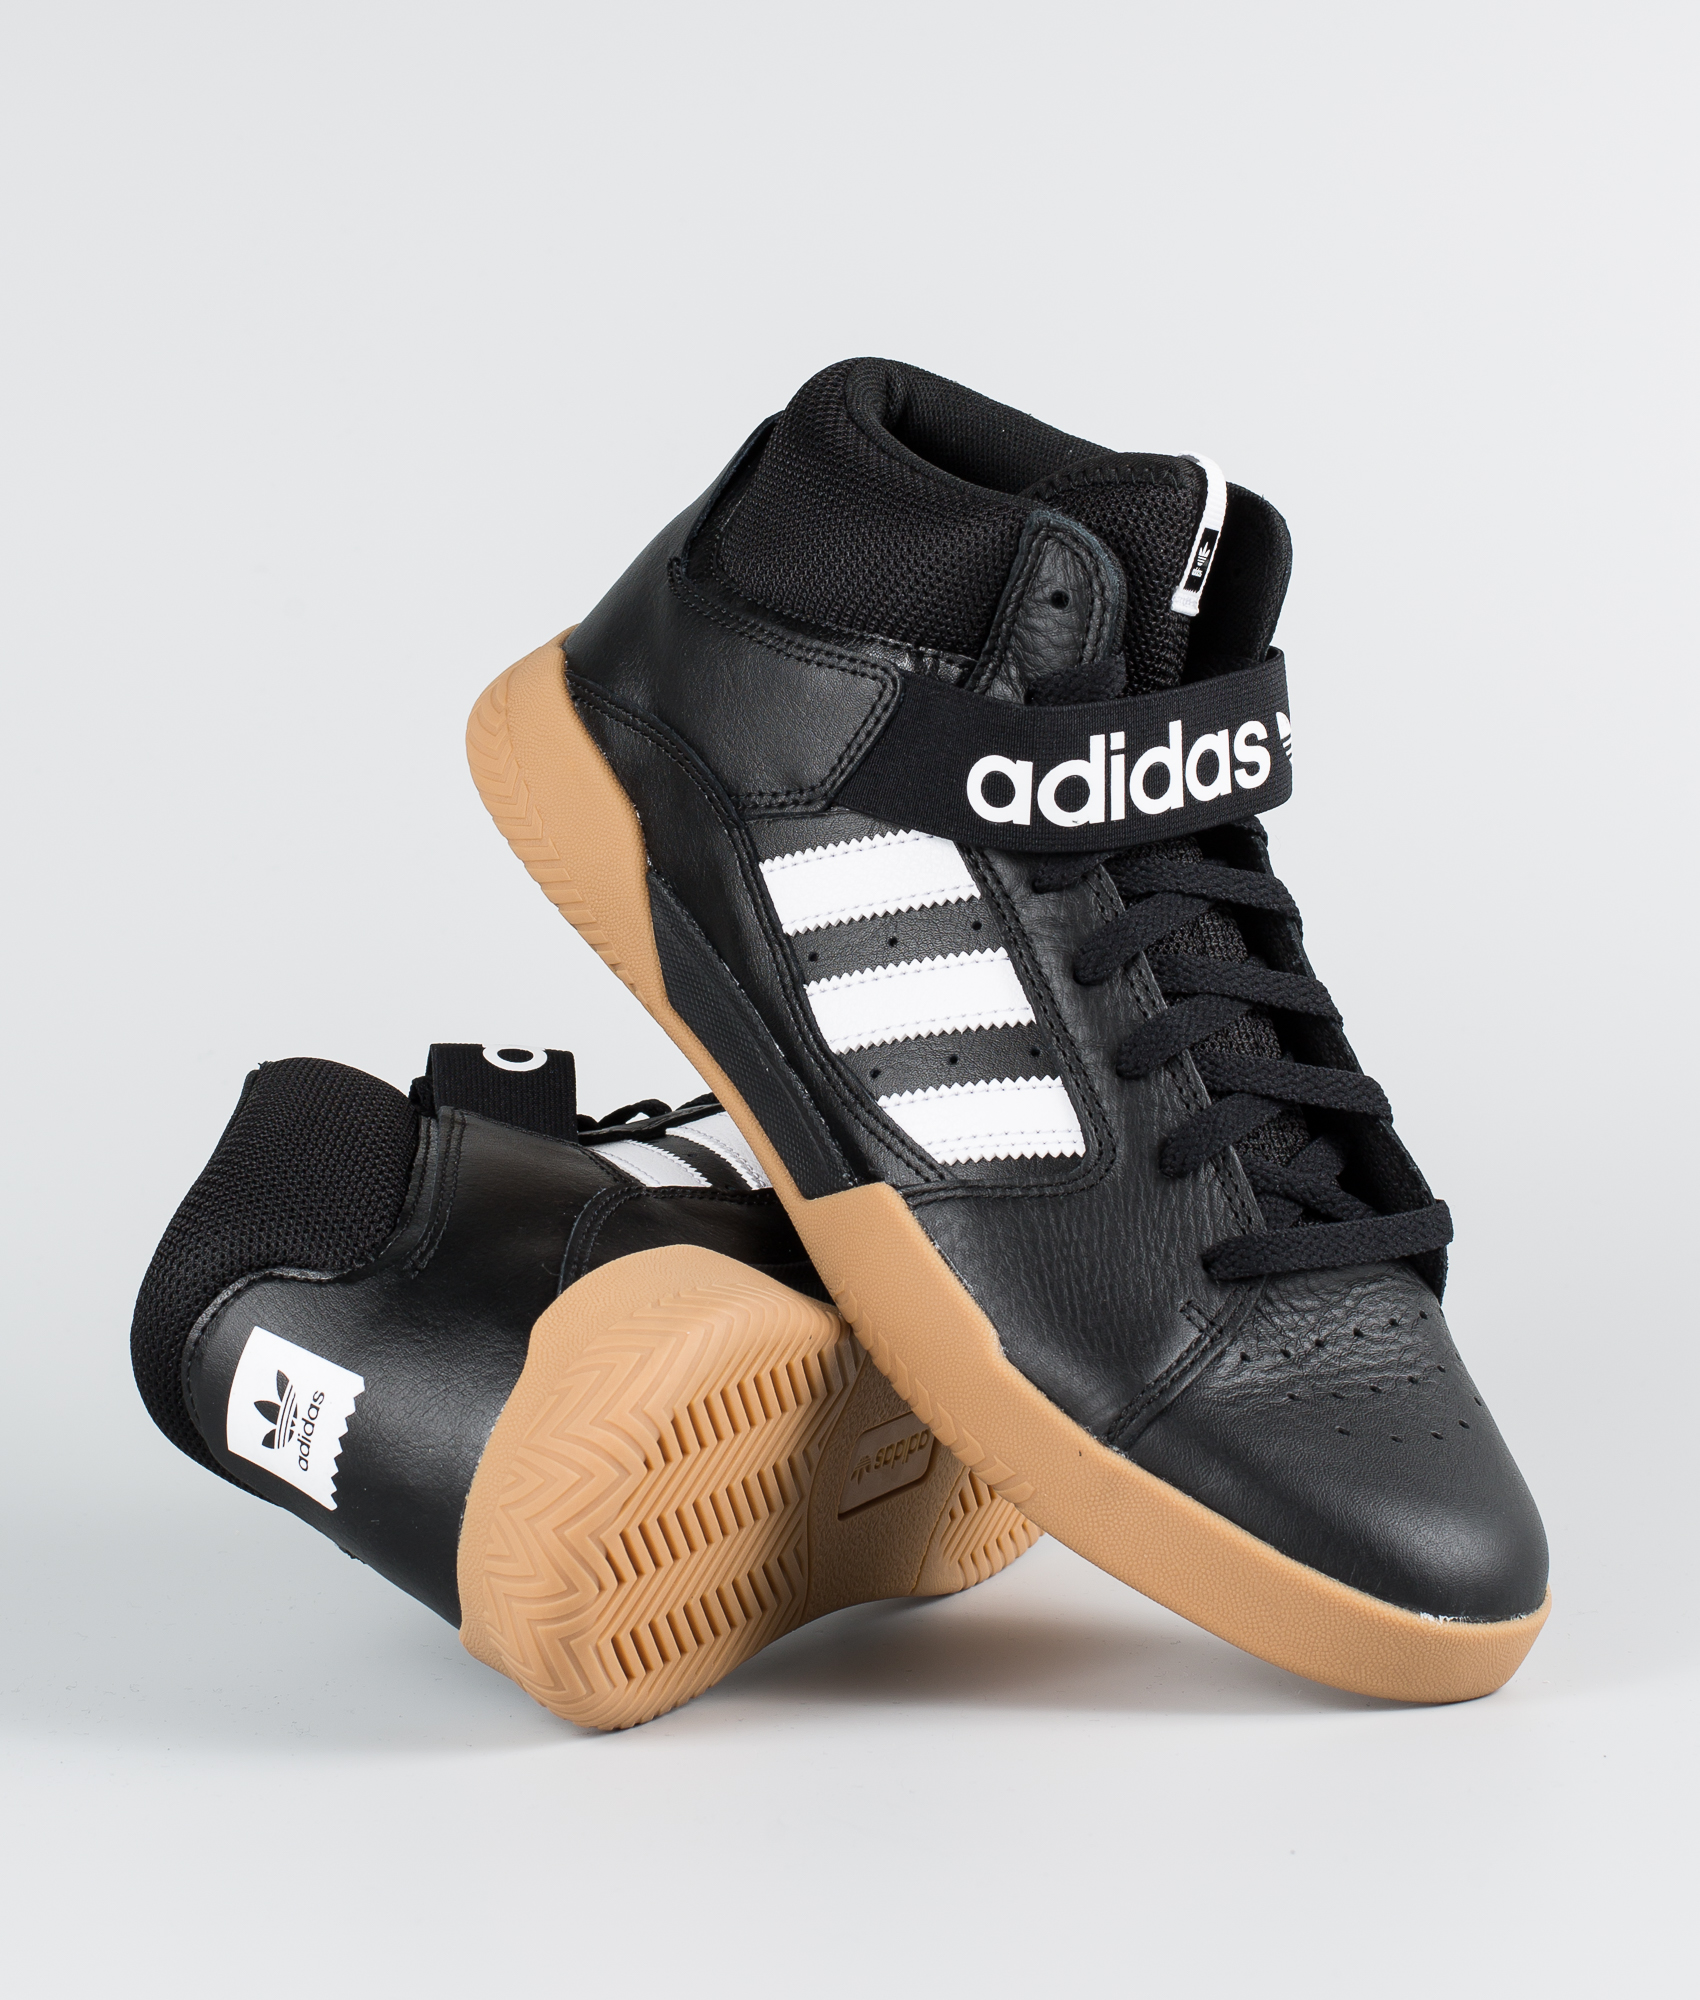 Adidas Skateboarding Vrx Mid Shoes Core